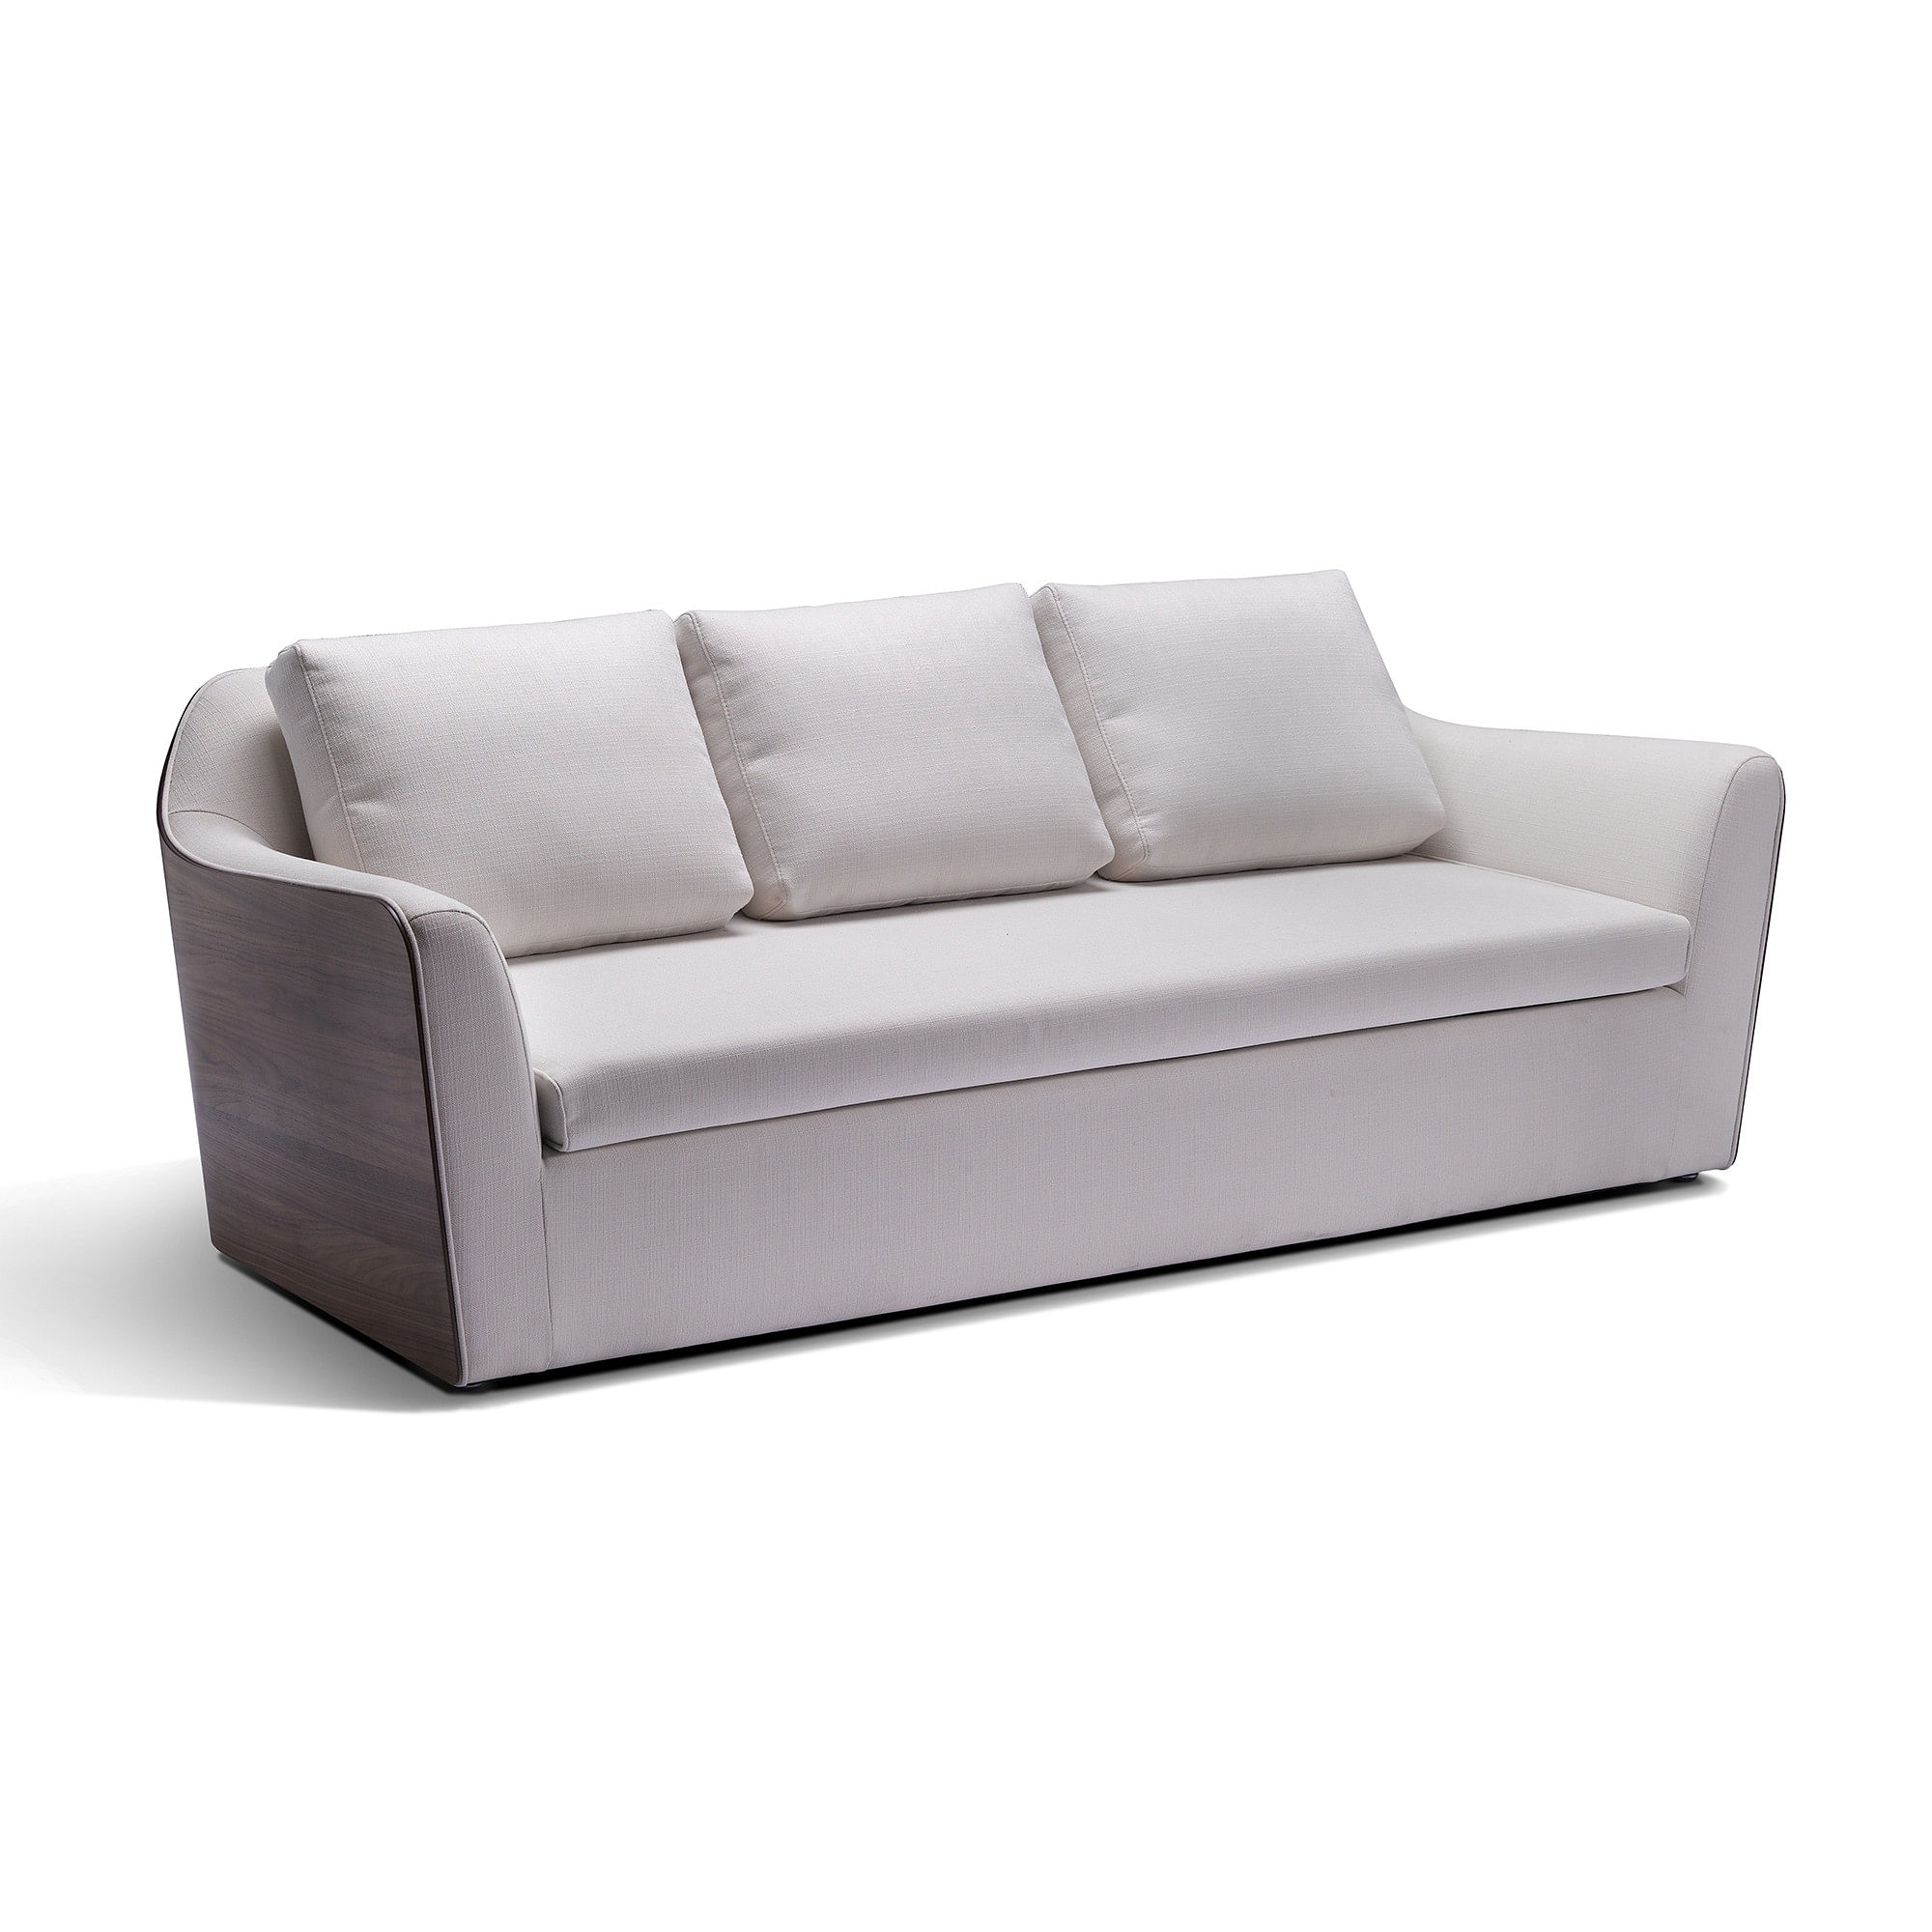 Looking For Stylish Sofas And Armchairs This Has Them